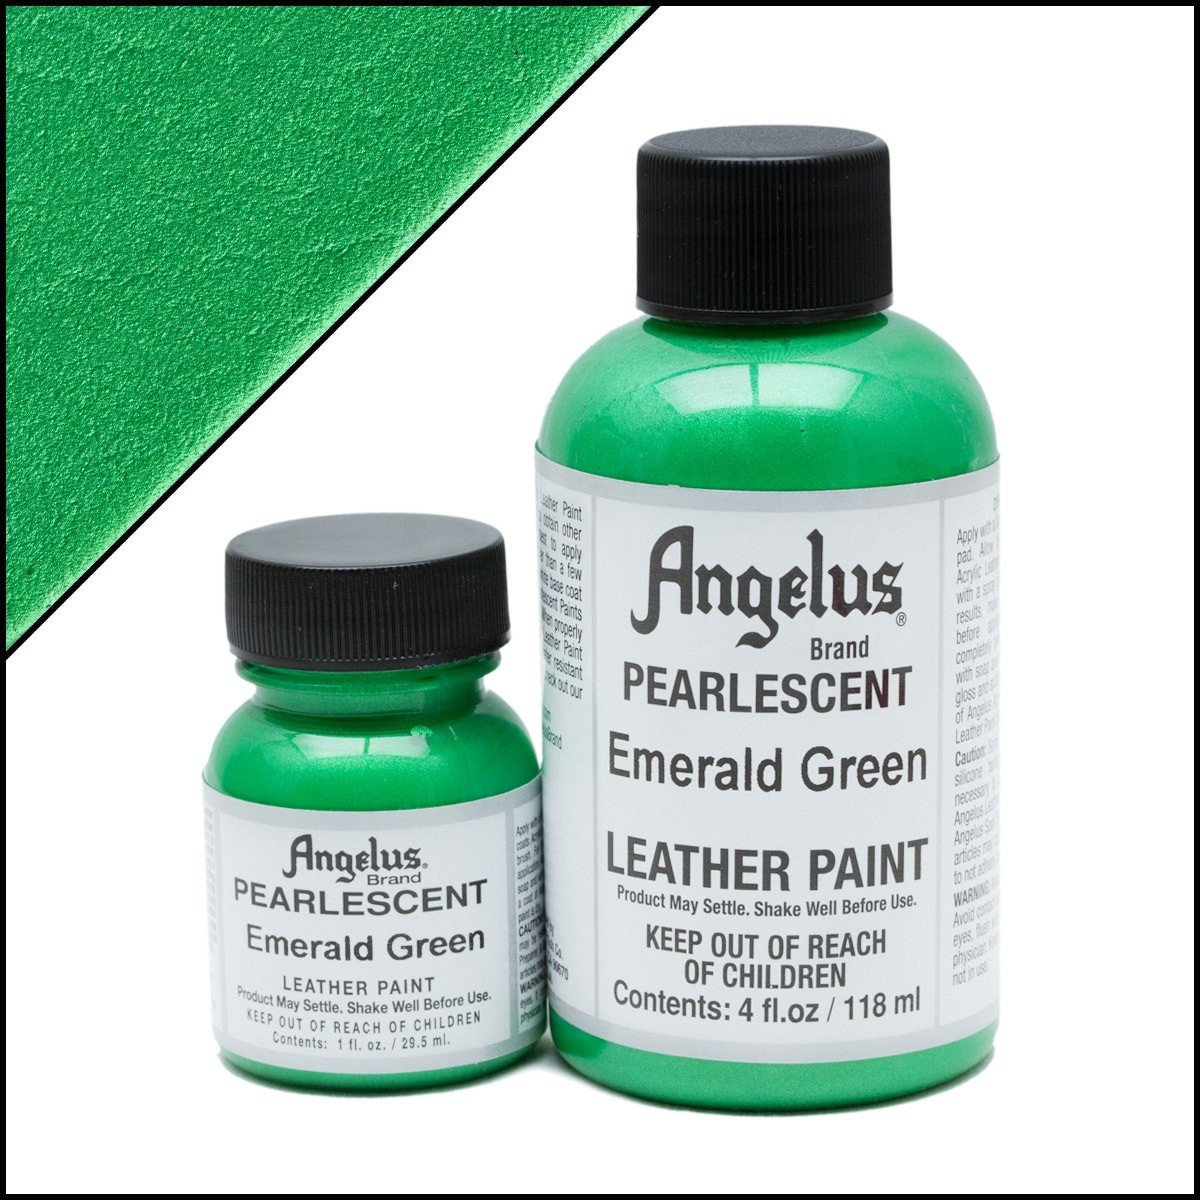 Angelus Pearlescent Emerald Green Paint